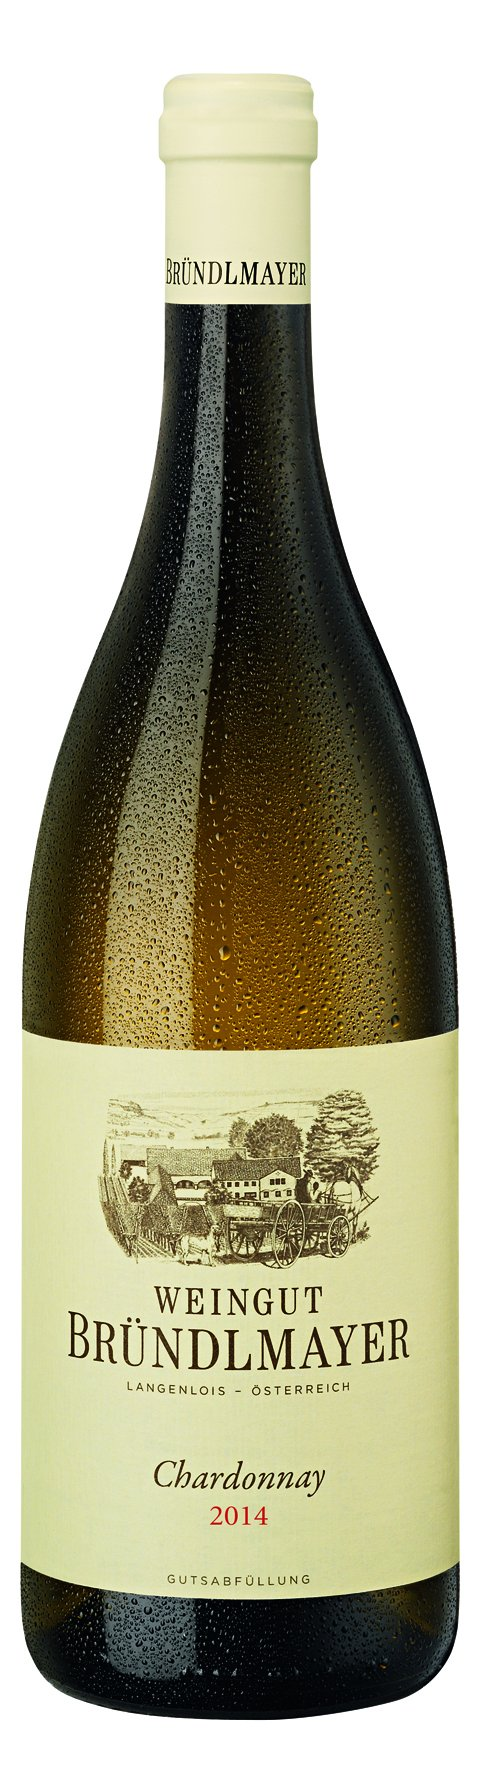 Willi-Brndlmayer-Chardonnay-2014